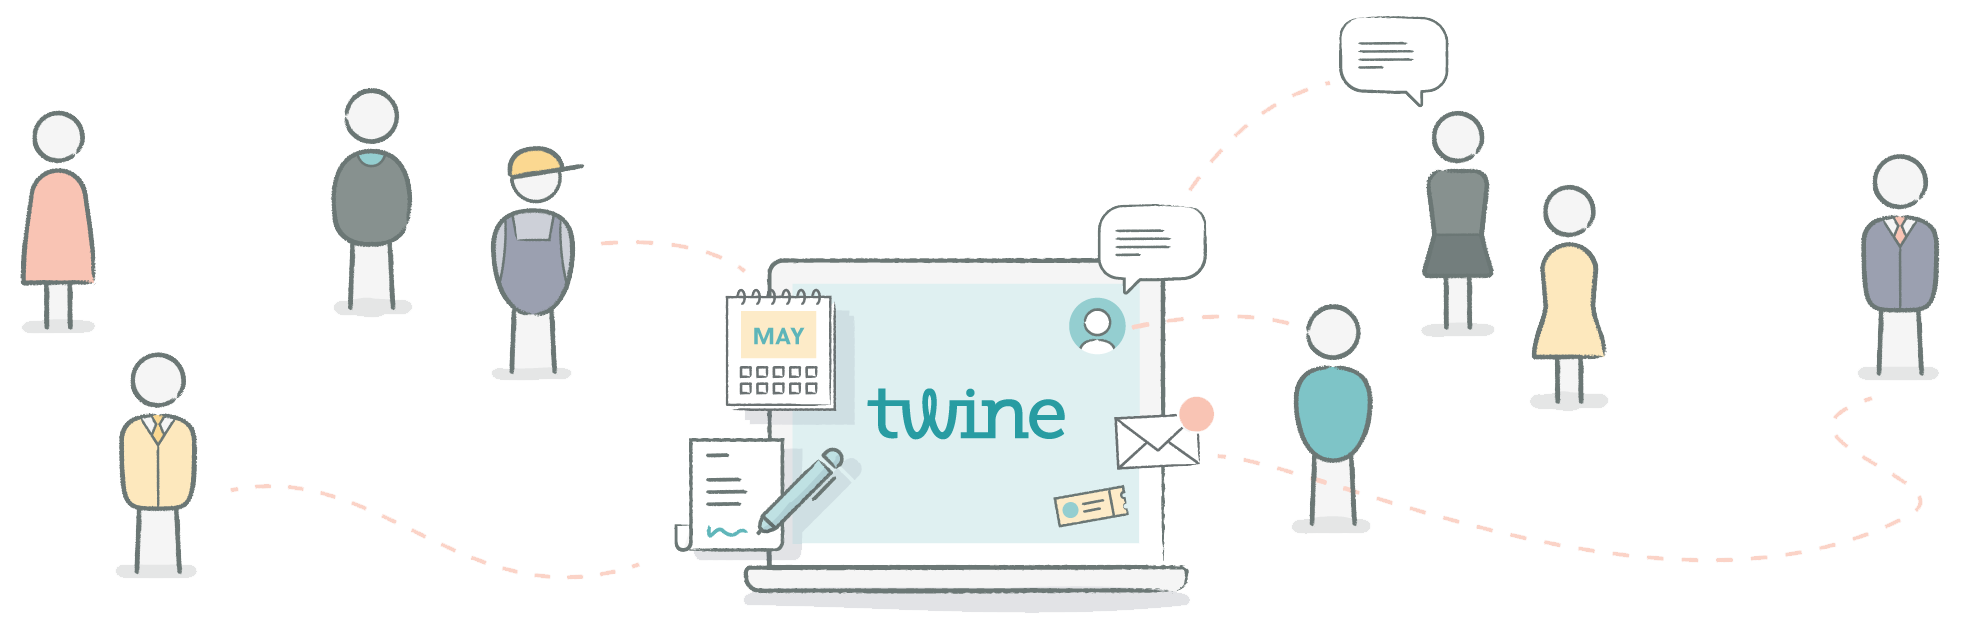 twine-illustration-crop-transparent